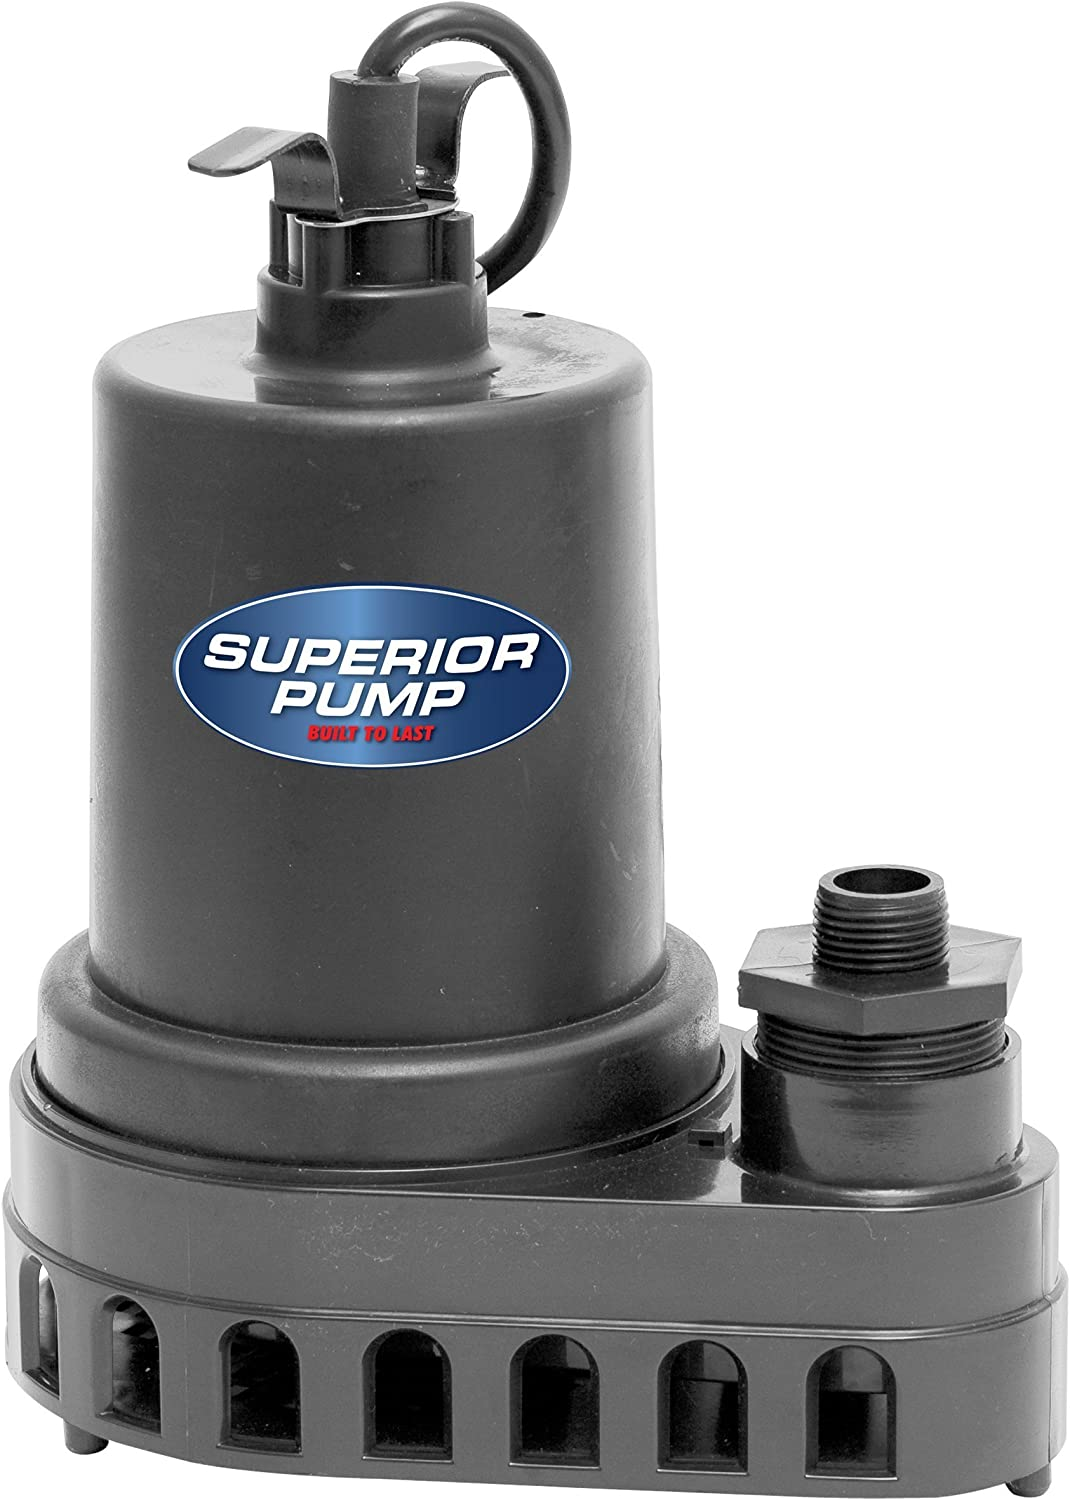 Superior Pump 92370 1/2 HP Thermoplastic Side-Discharge Sump Pump, Float Switch (Renewed)